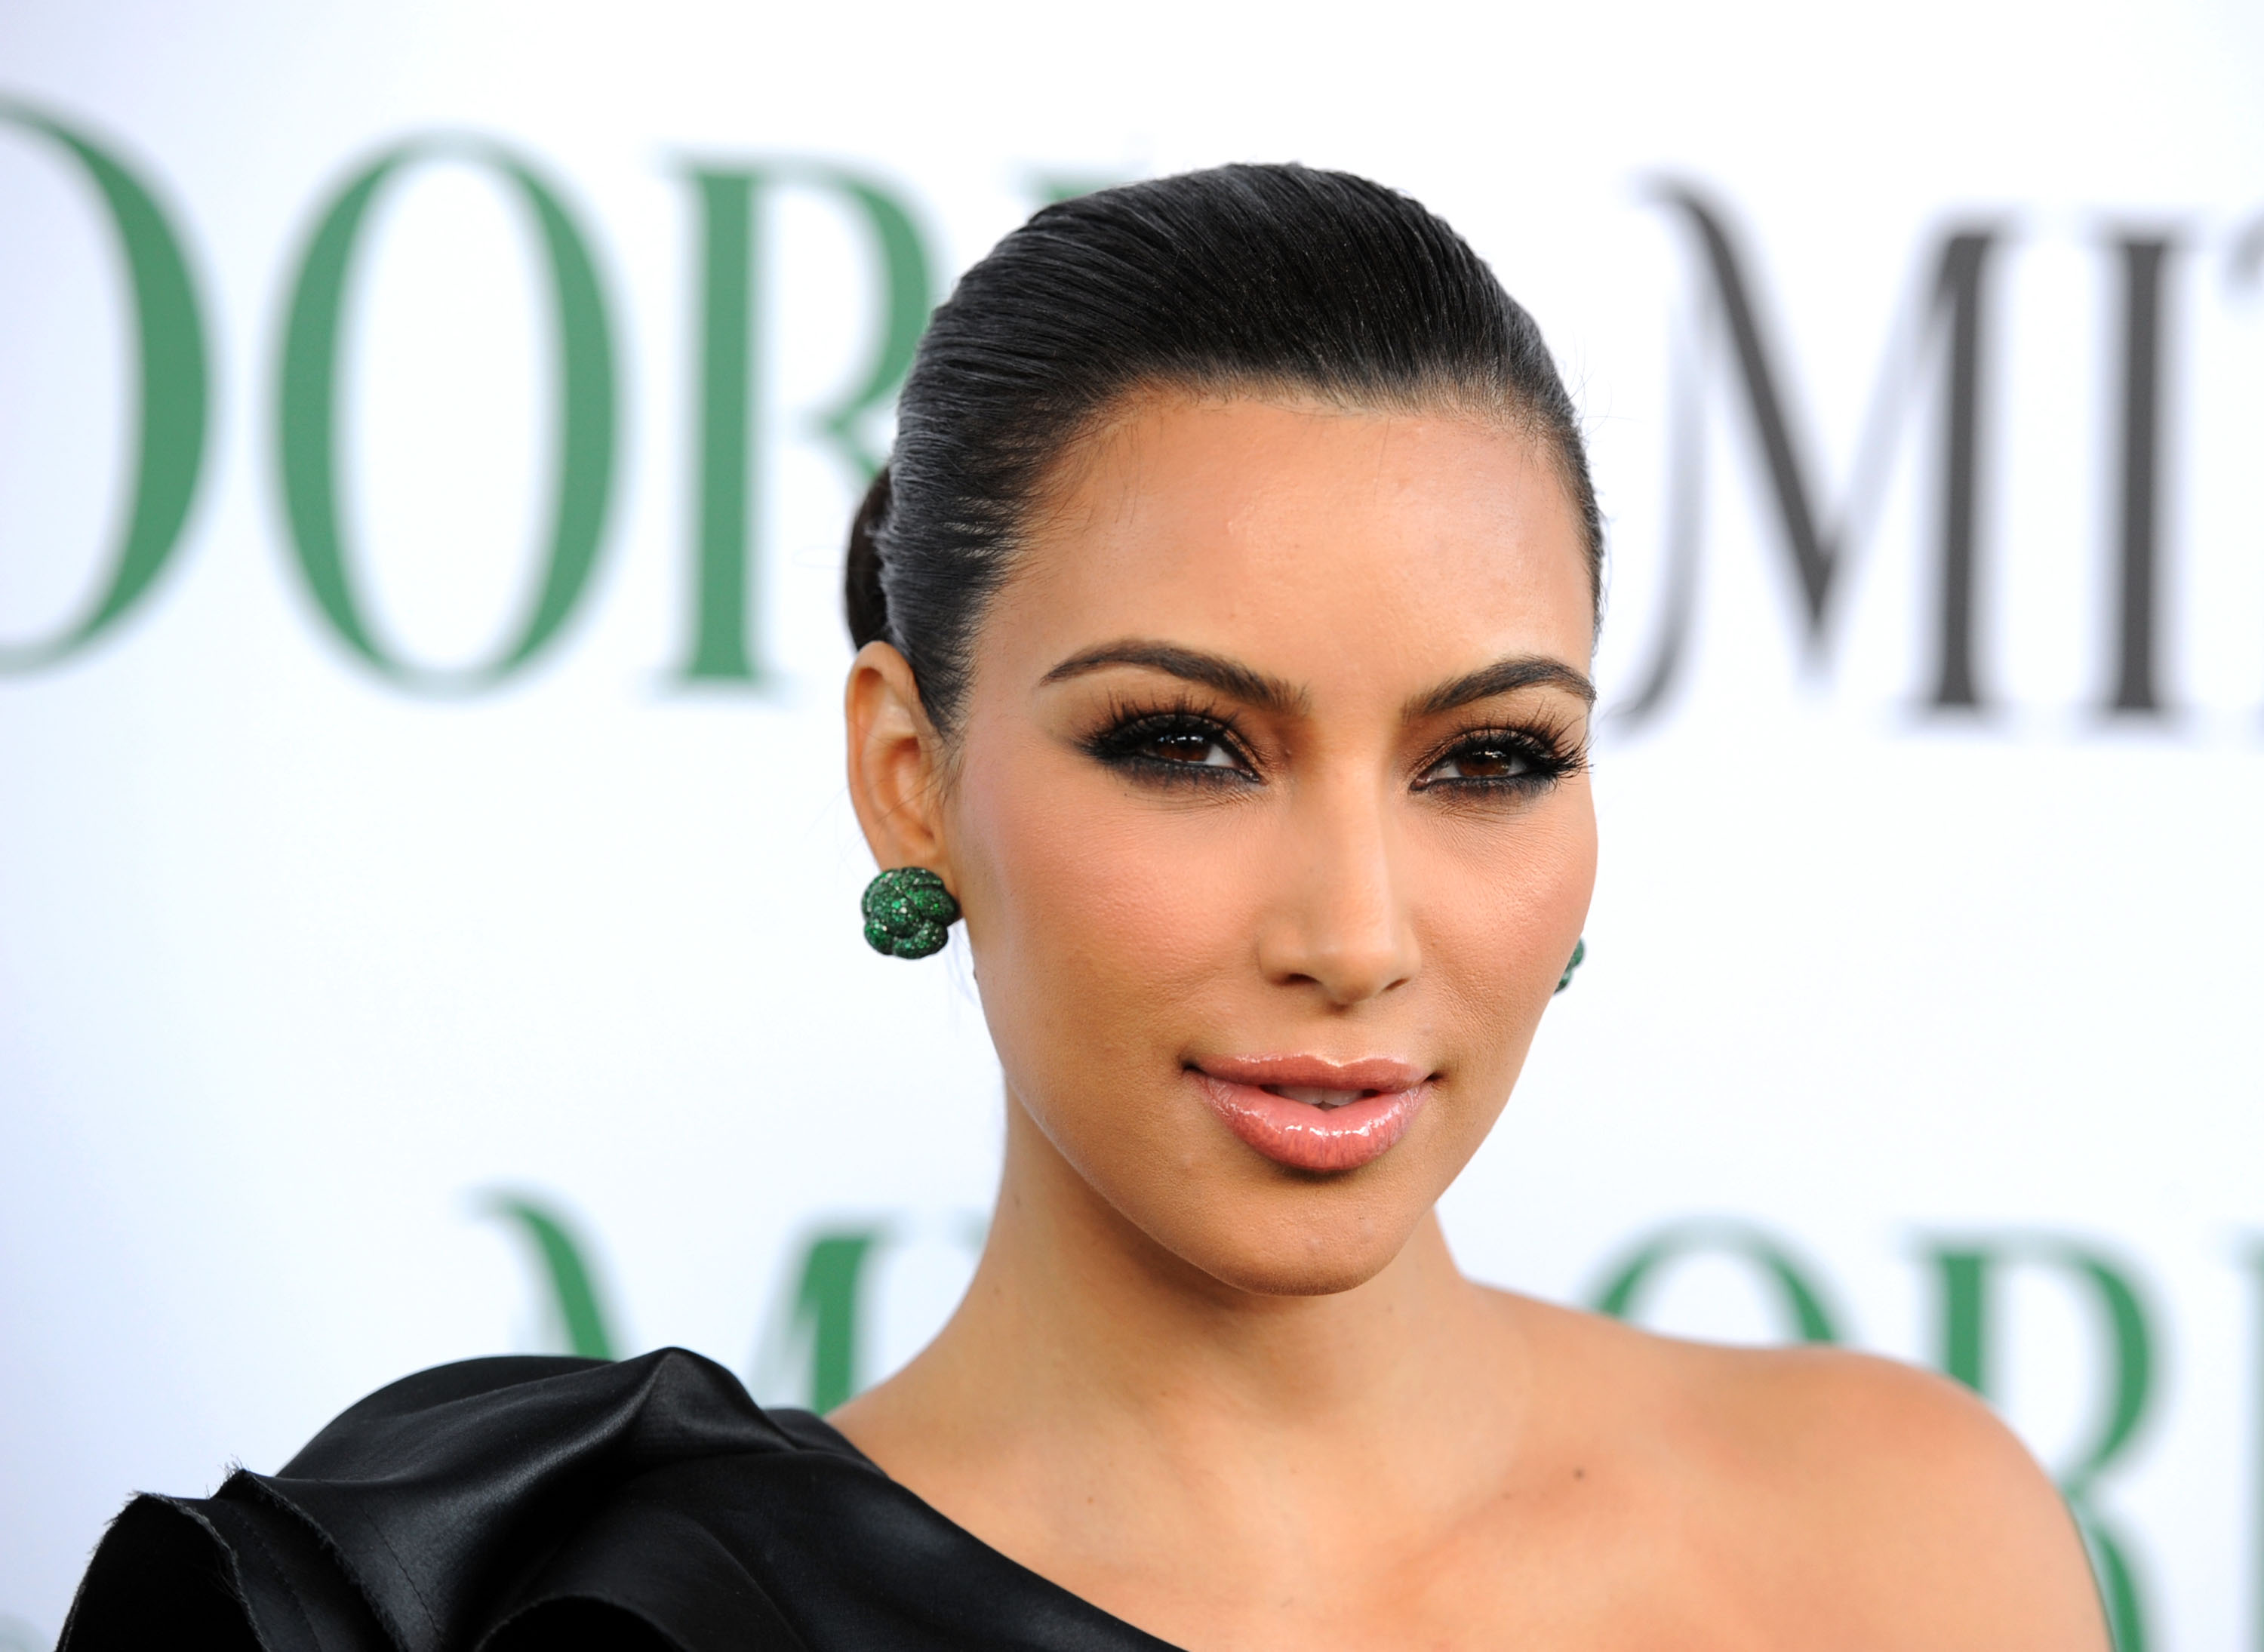 WEST HOLLYWOOD, CA - MAY 10: Television personality Kim Kardashian arrives at Kim Kardashian & Midori Melon Liqueur launches The Midori Trunk Shows at Trousdale on May 10, 2011 in West Hollywood, California. (Photo by Frazer Harrison/Getty Images)